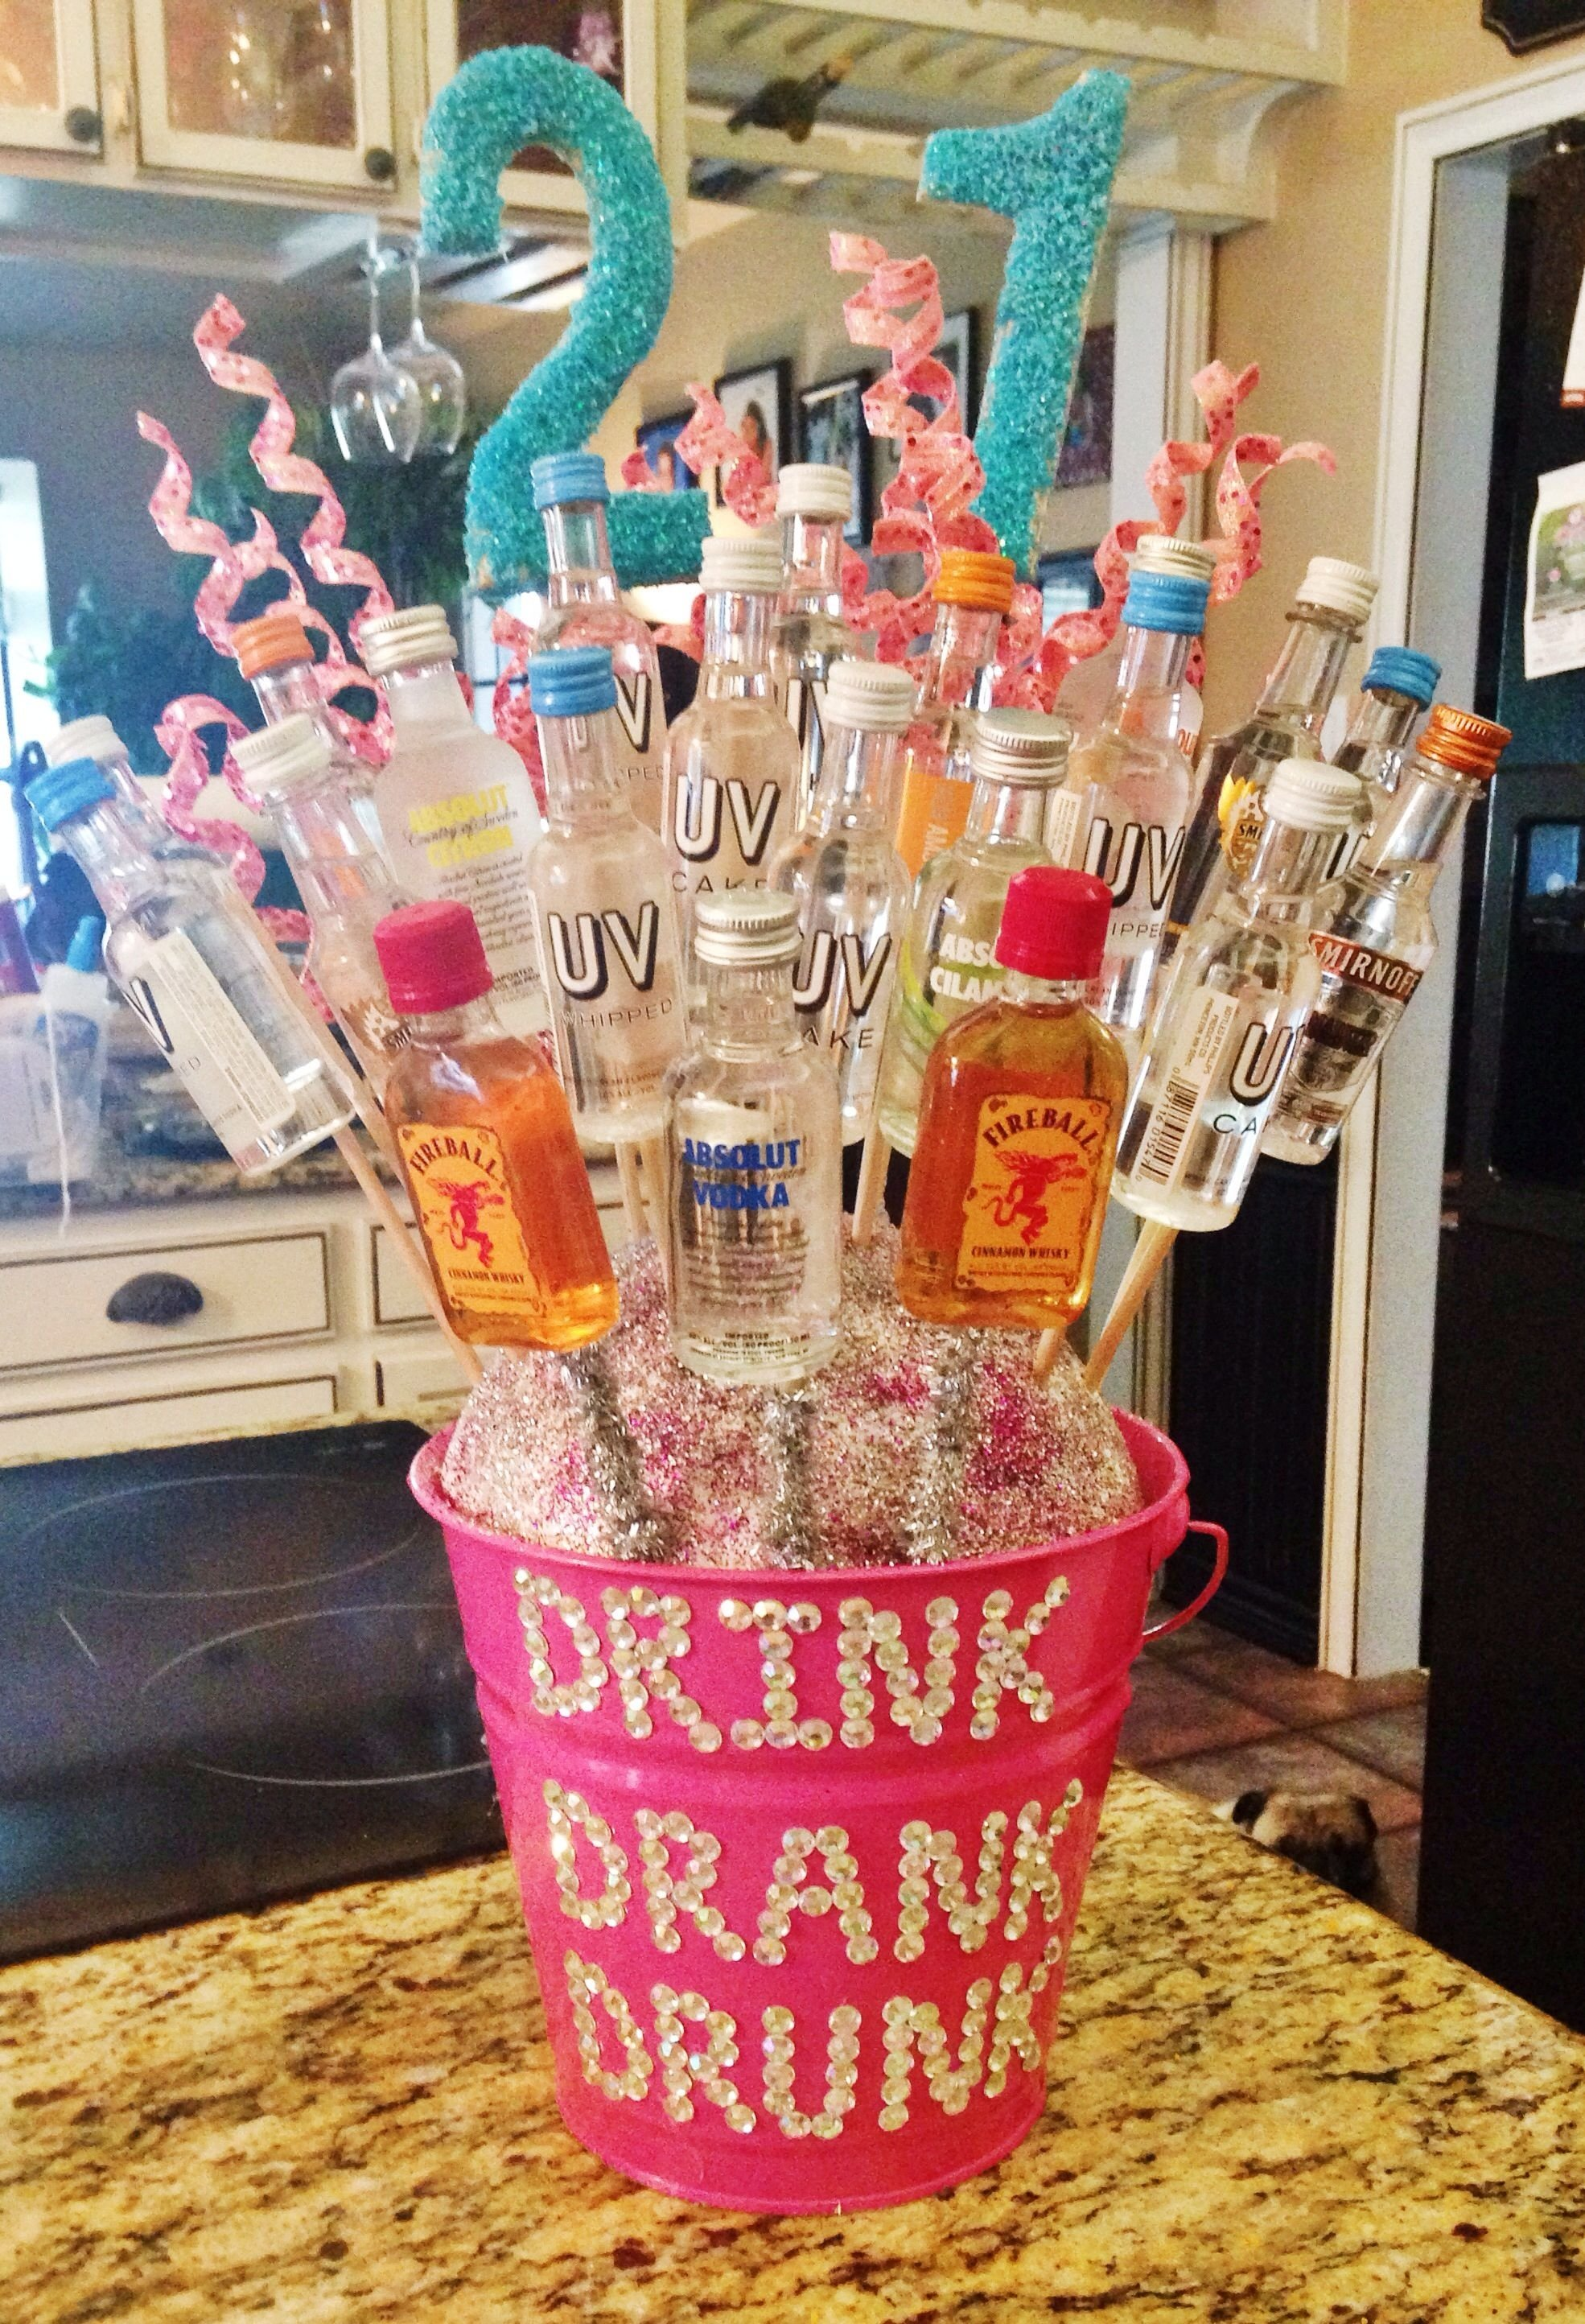 10 Most Recommended Best Friend Homemade Gift Ideas 21st alcohol bouquet i made for my best friend diy pinterest 7